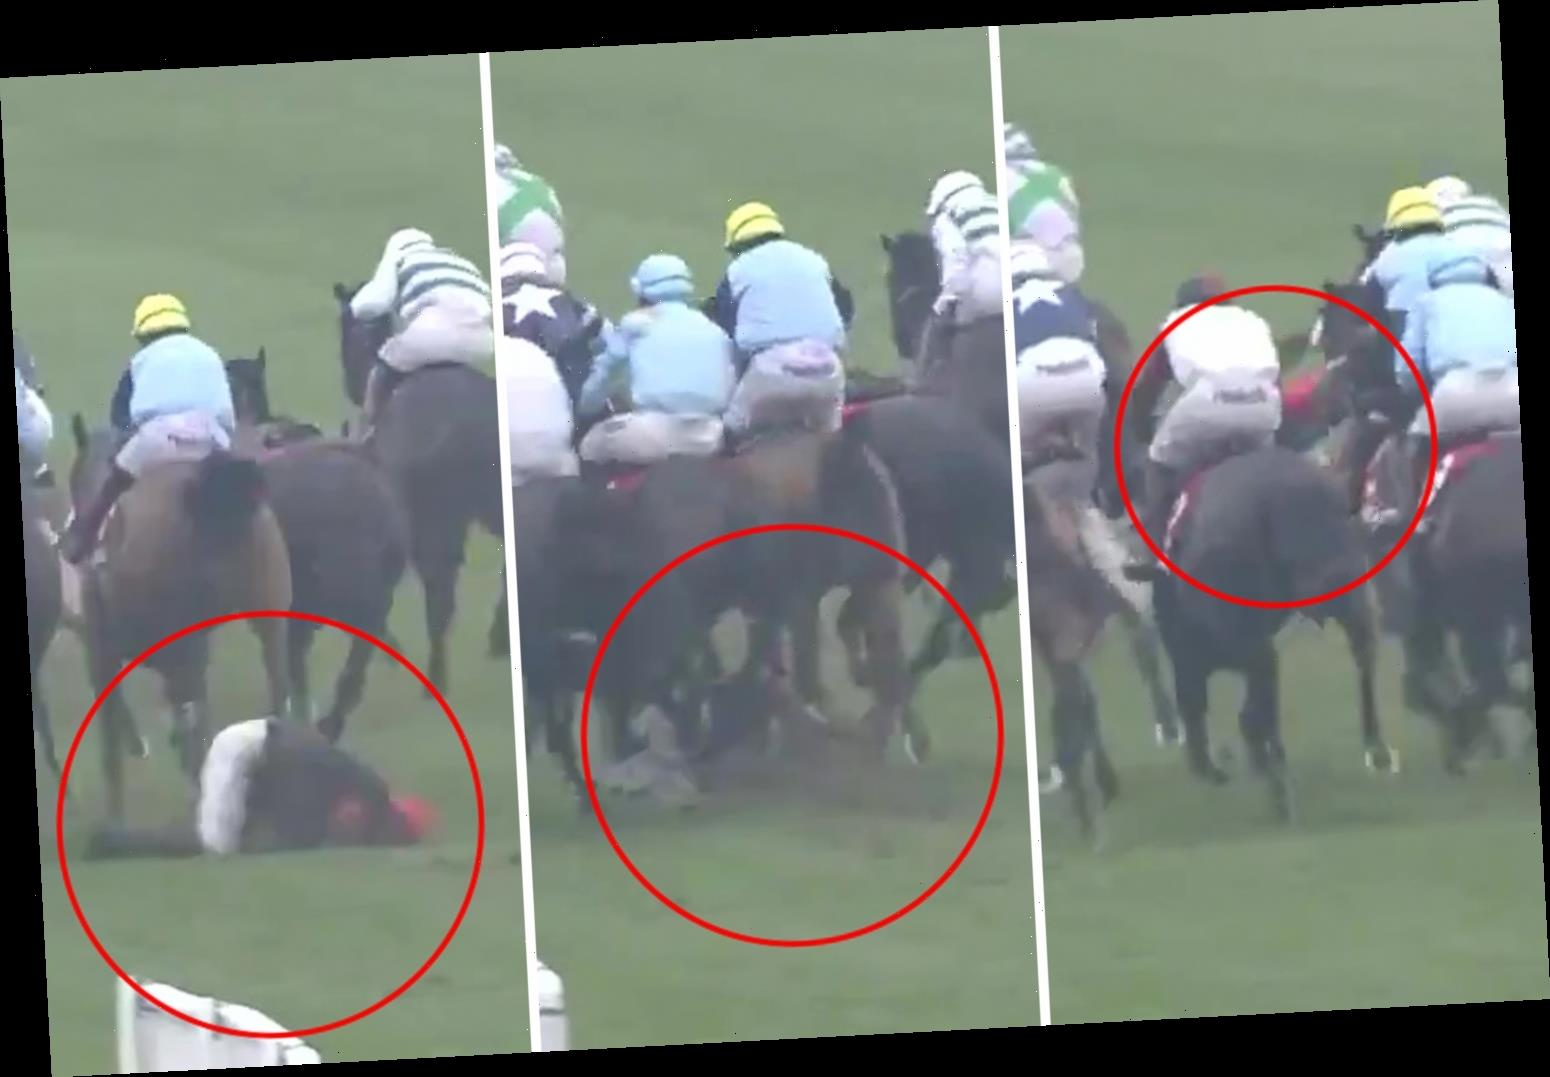 Watch jockey Harry Cobden suffer horror fall UNDERNEATH charging horses in nasty incident at Newbury racecourse